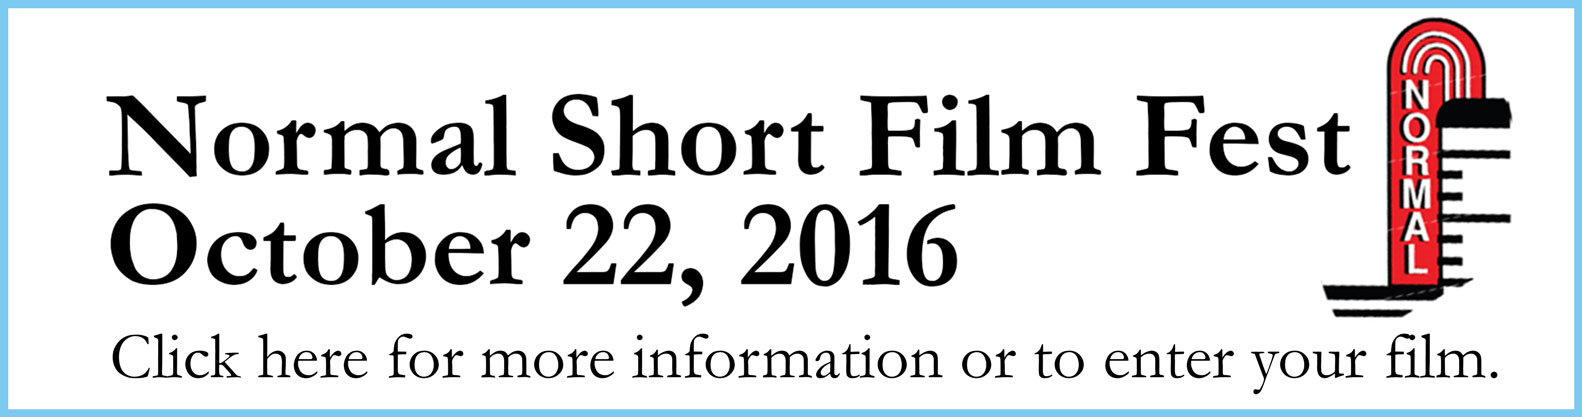 Normal Short Film Fest 2016 Application